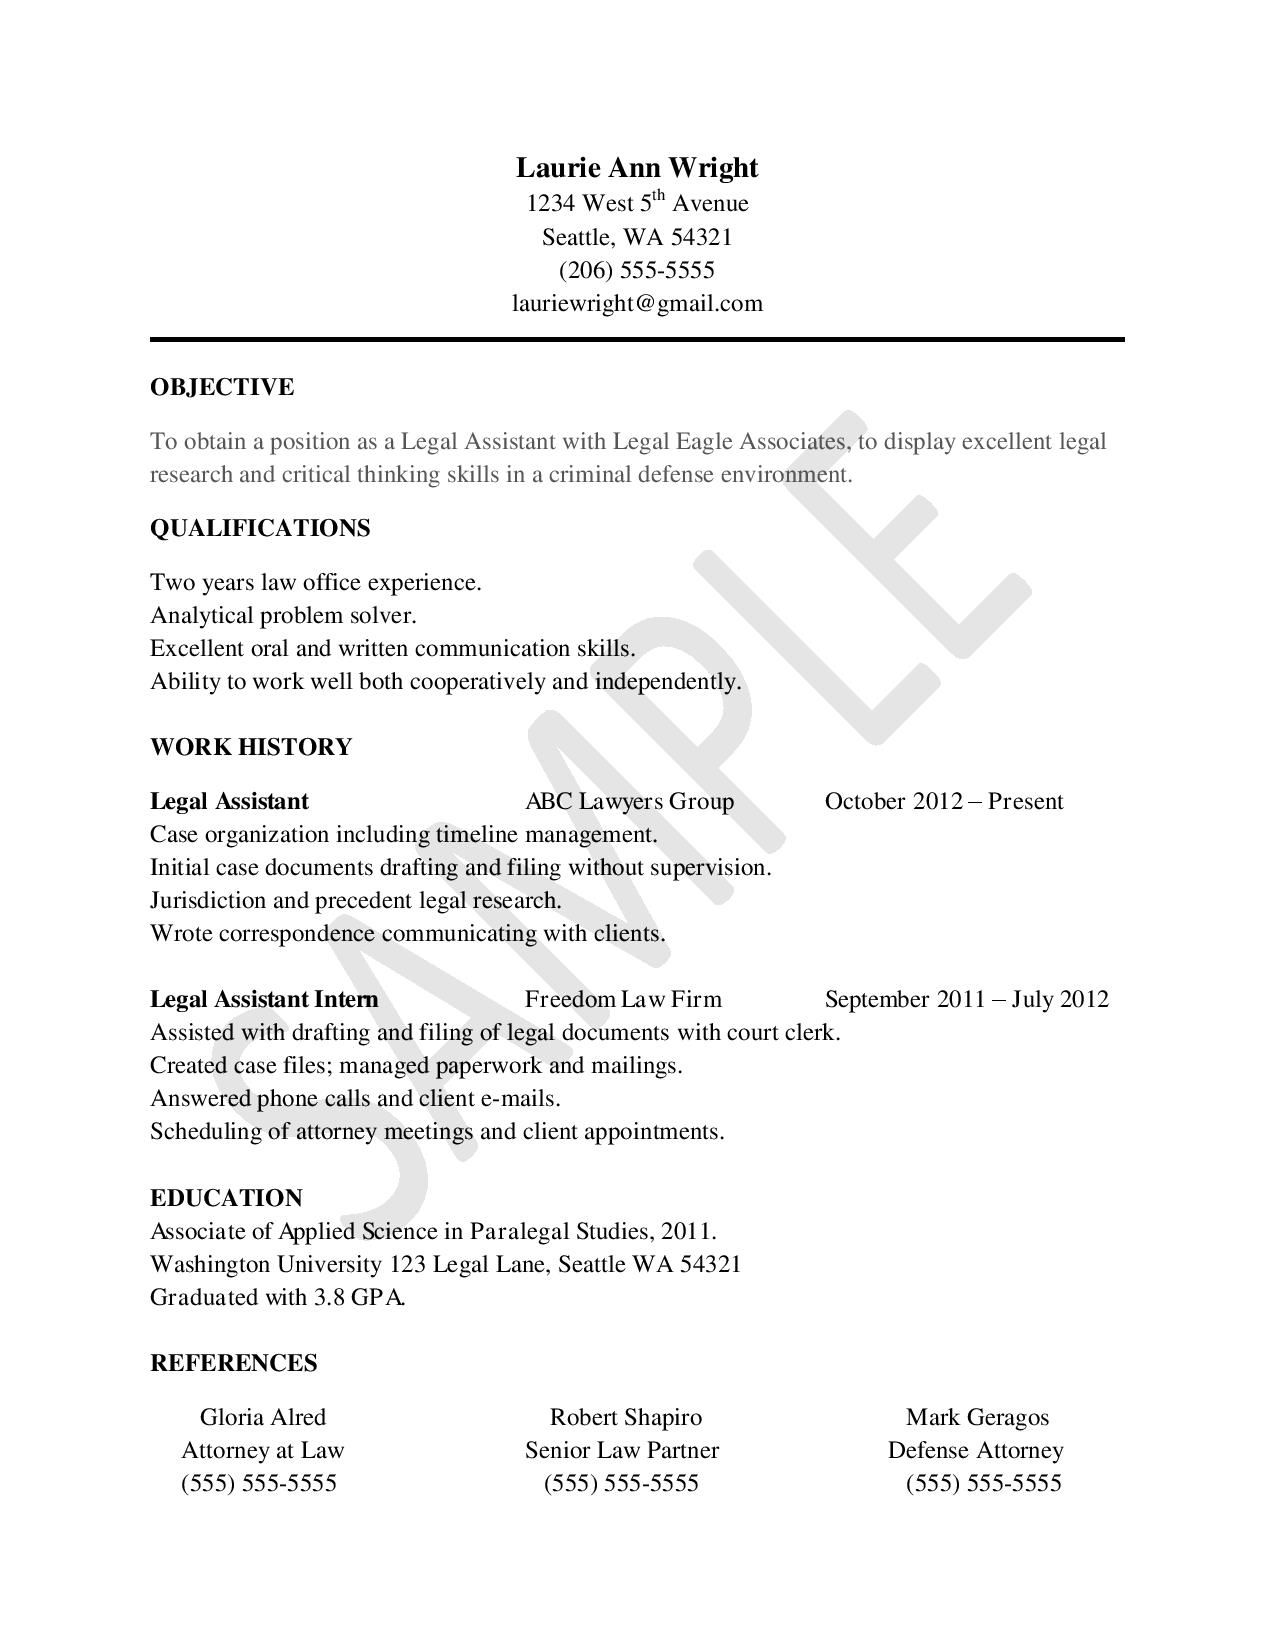 Writing A Resume Examples Sample Resume For Legal Assistants  Legalassistant